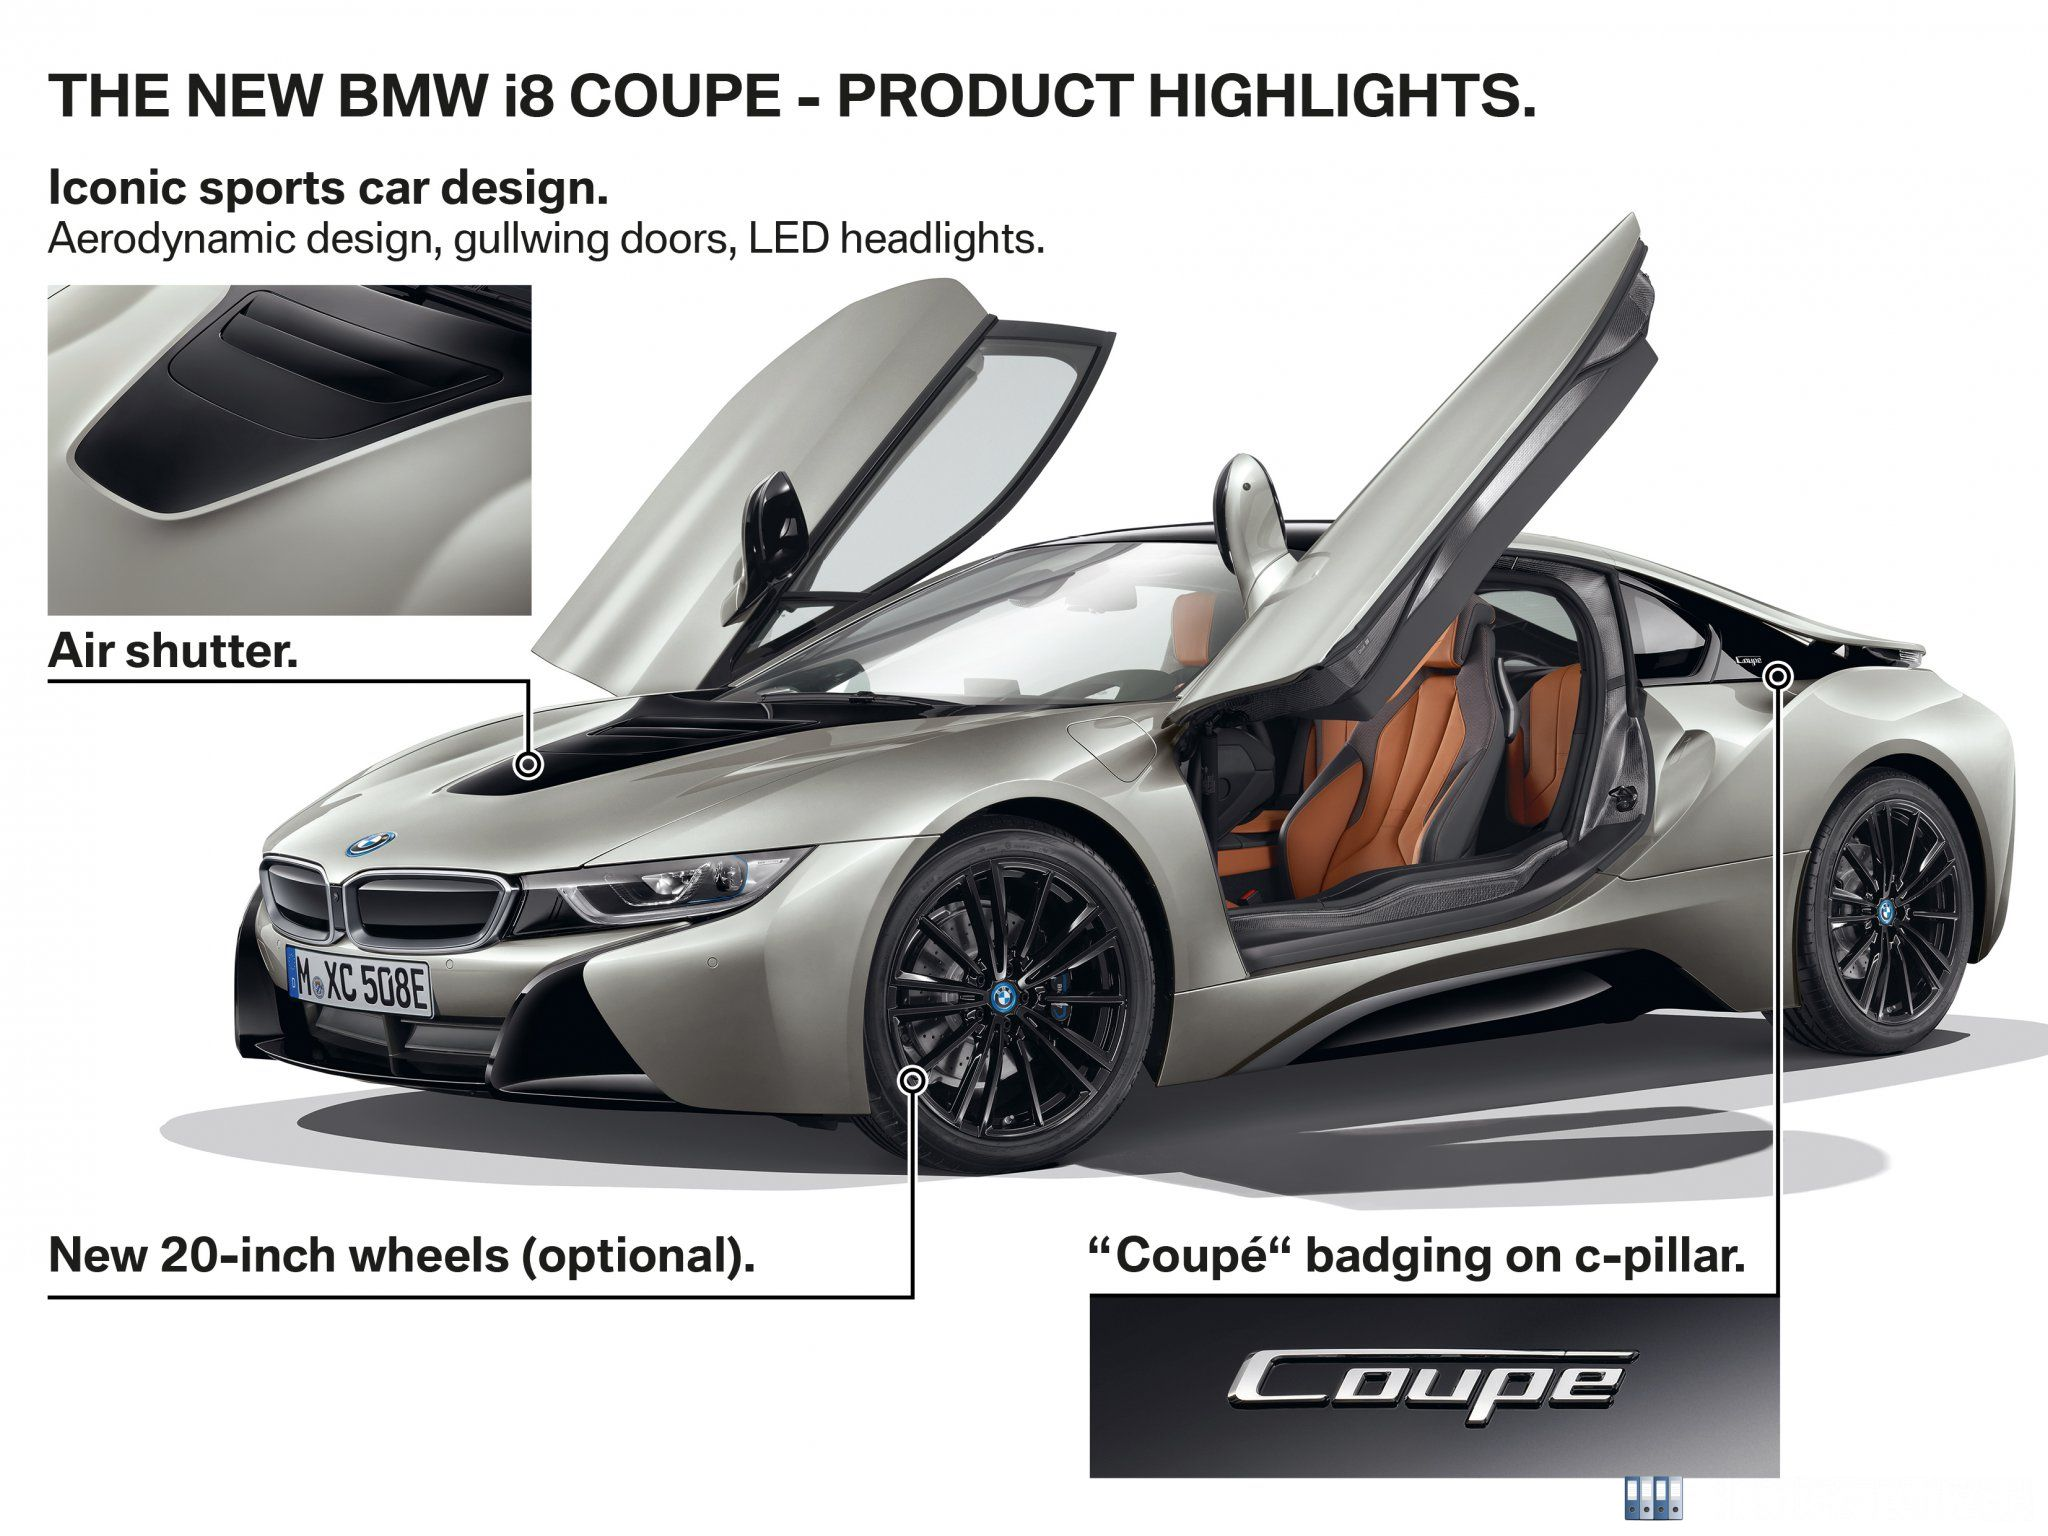 BMW i8 Coupé - Highlights